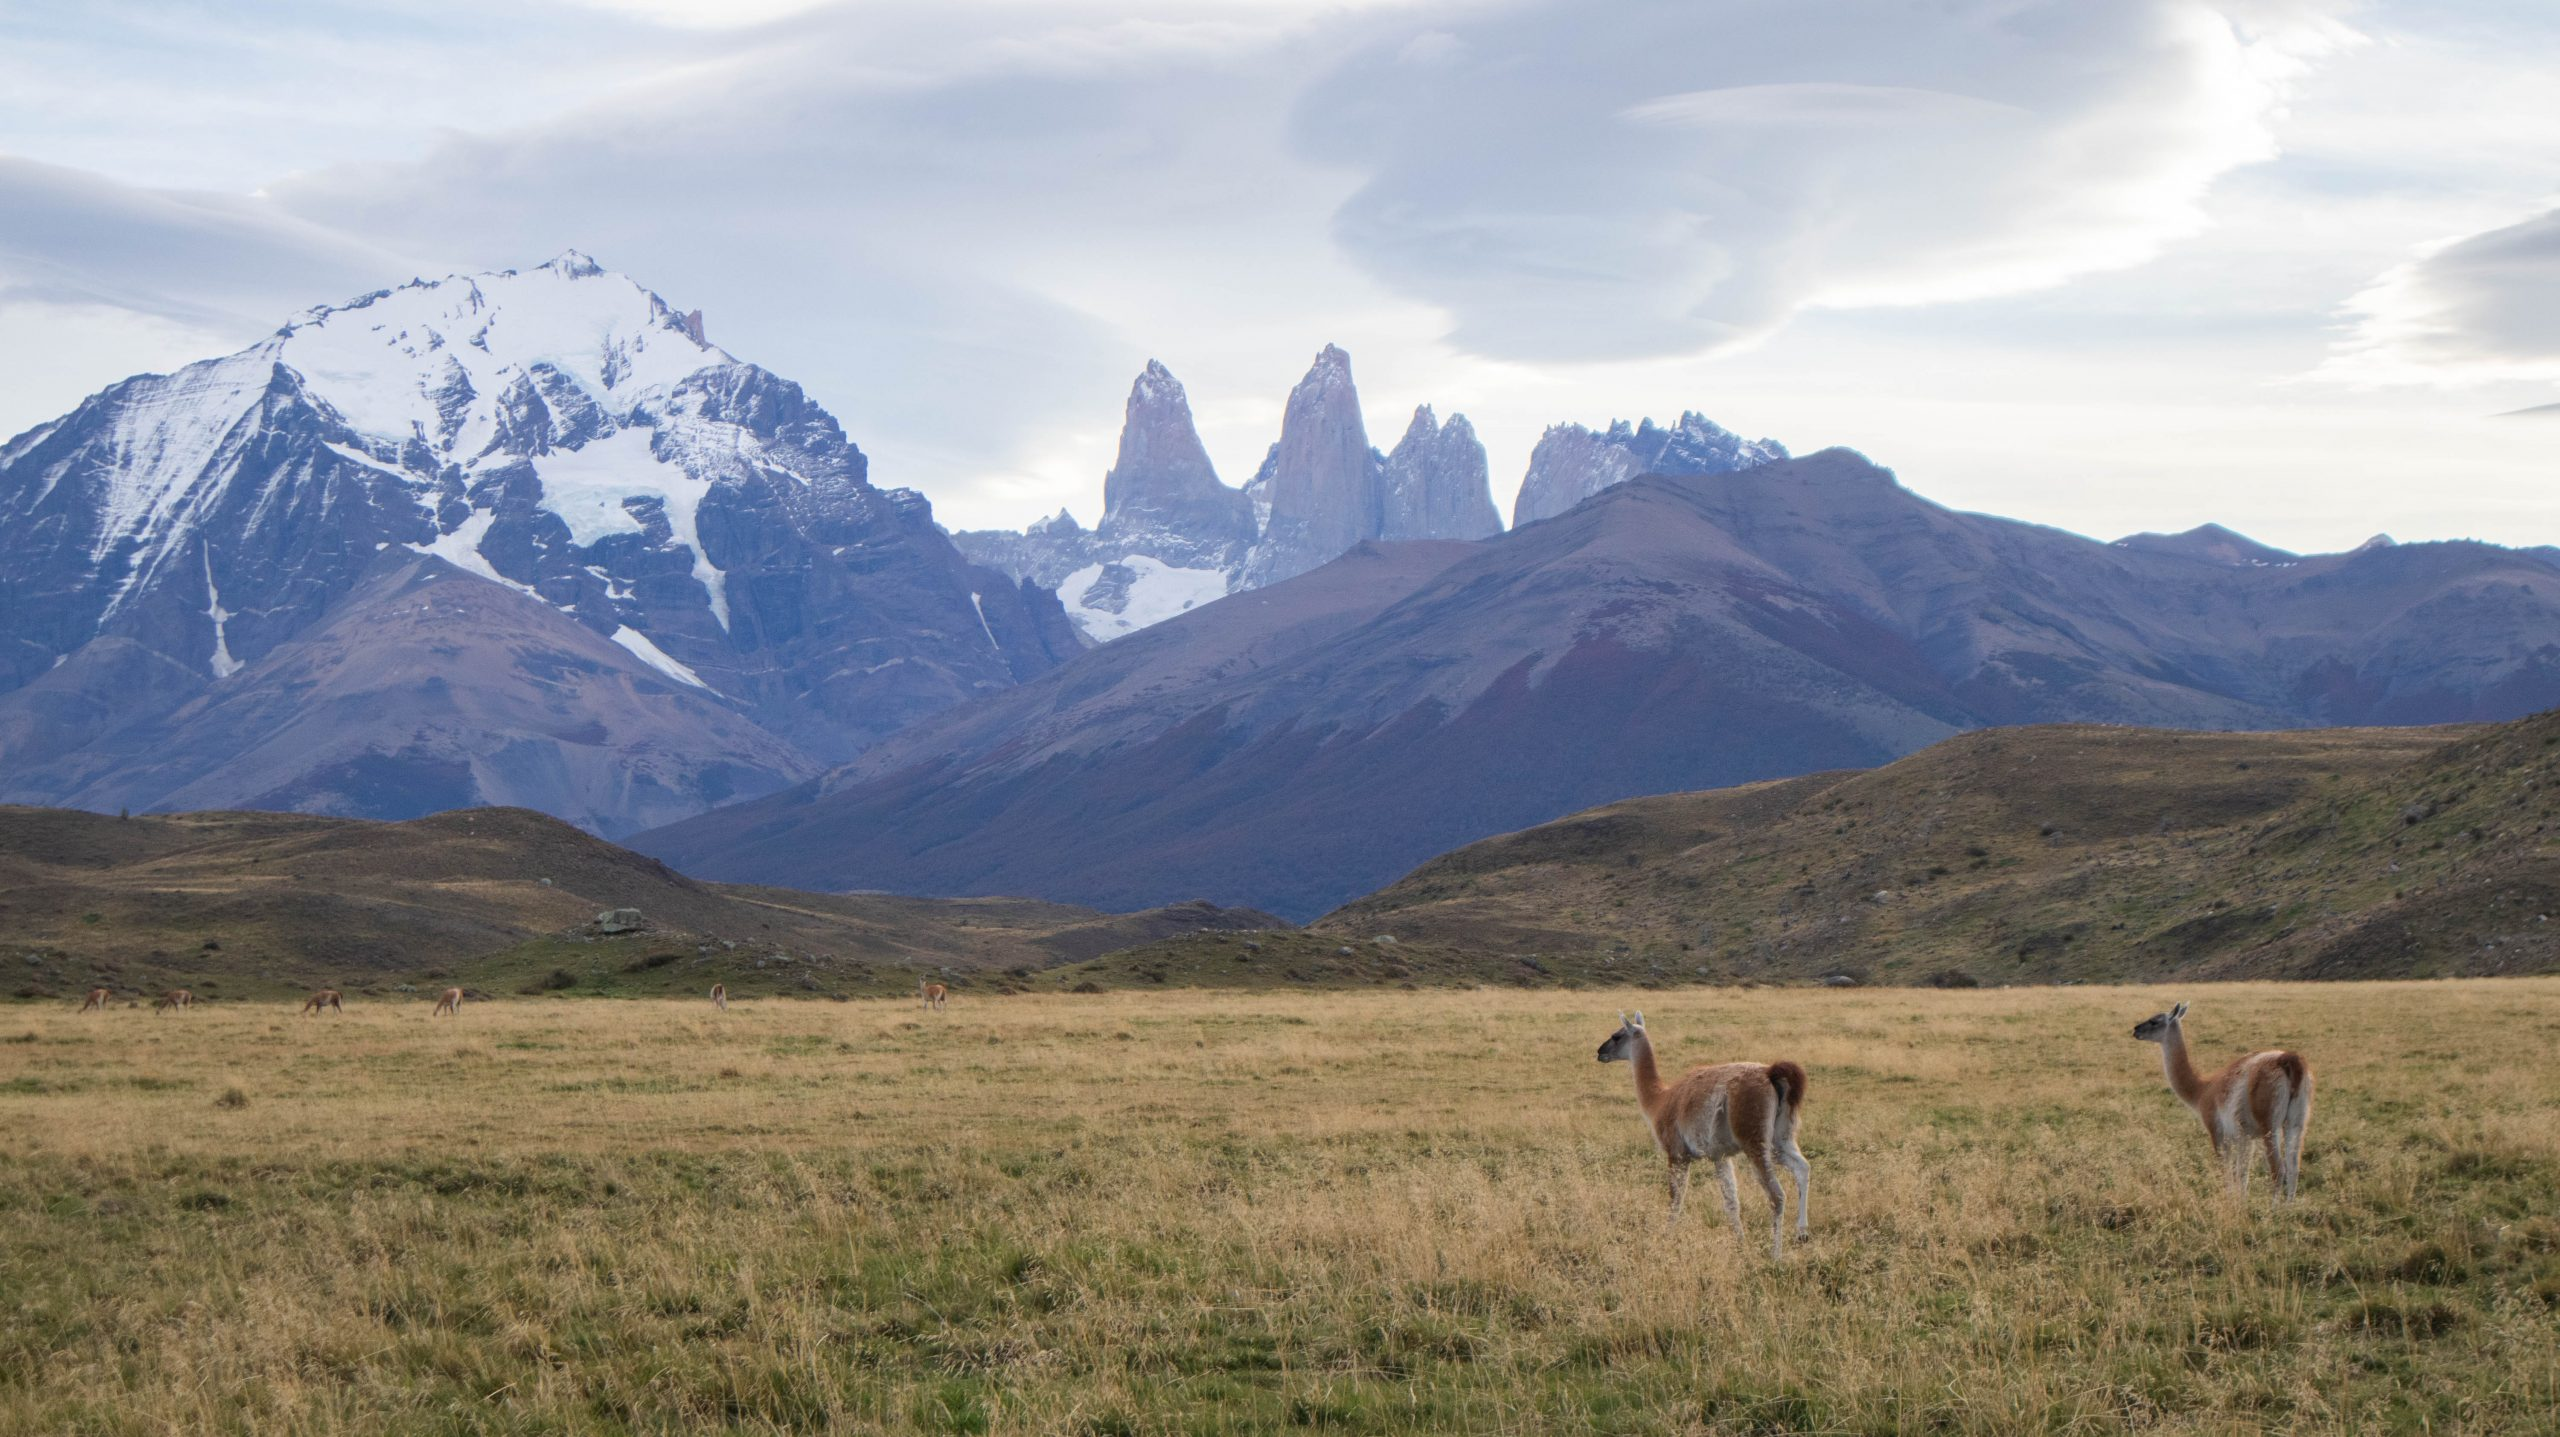 Guanacos on the Fauna Trail in Torres del Paine